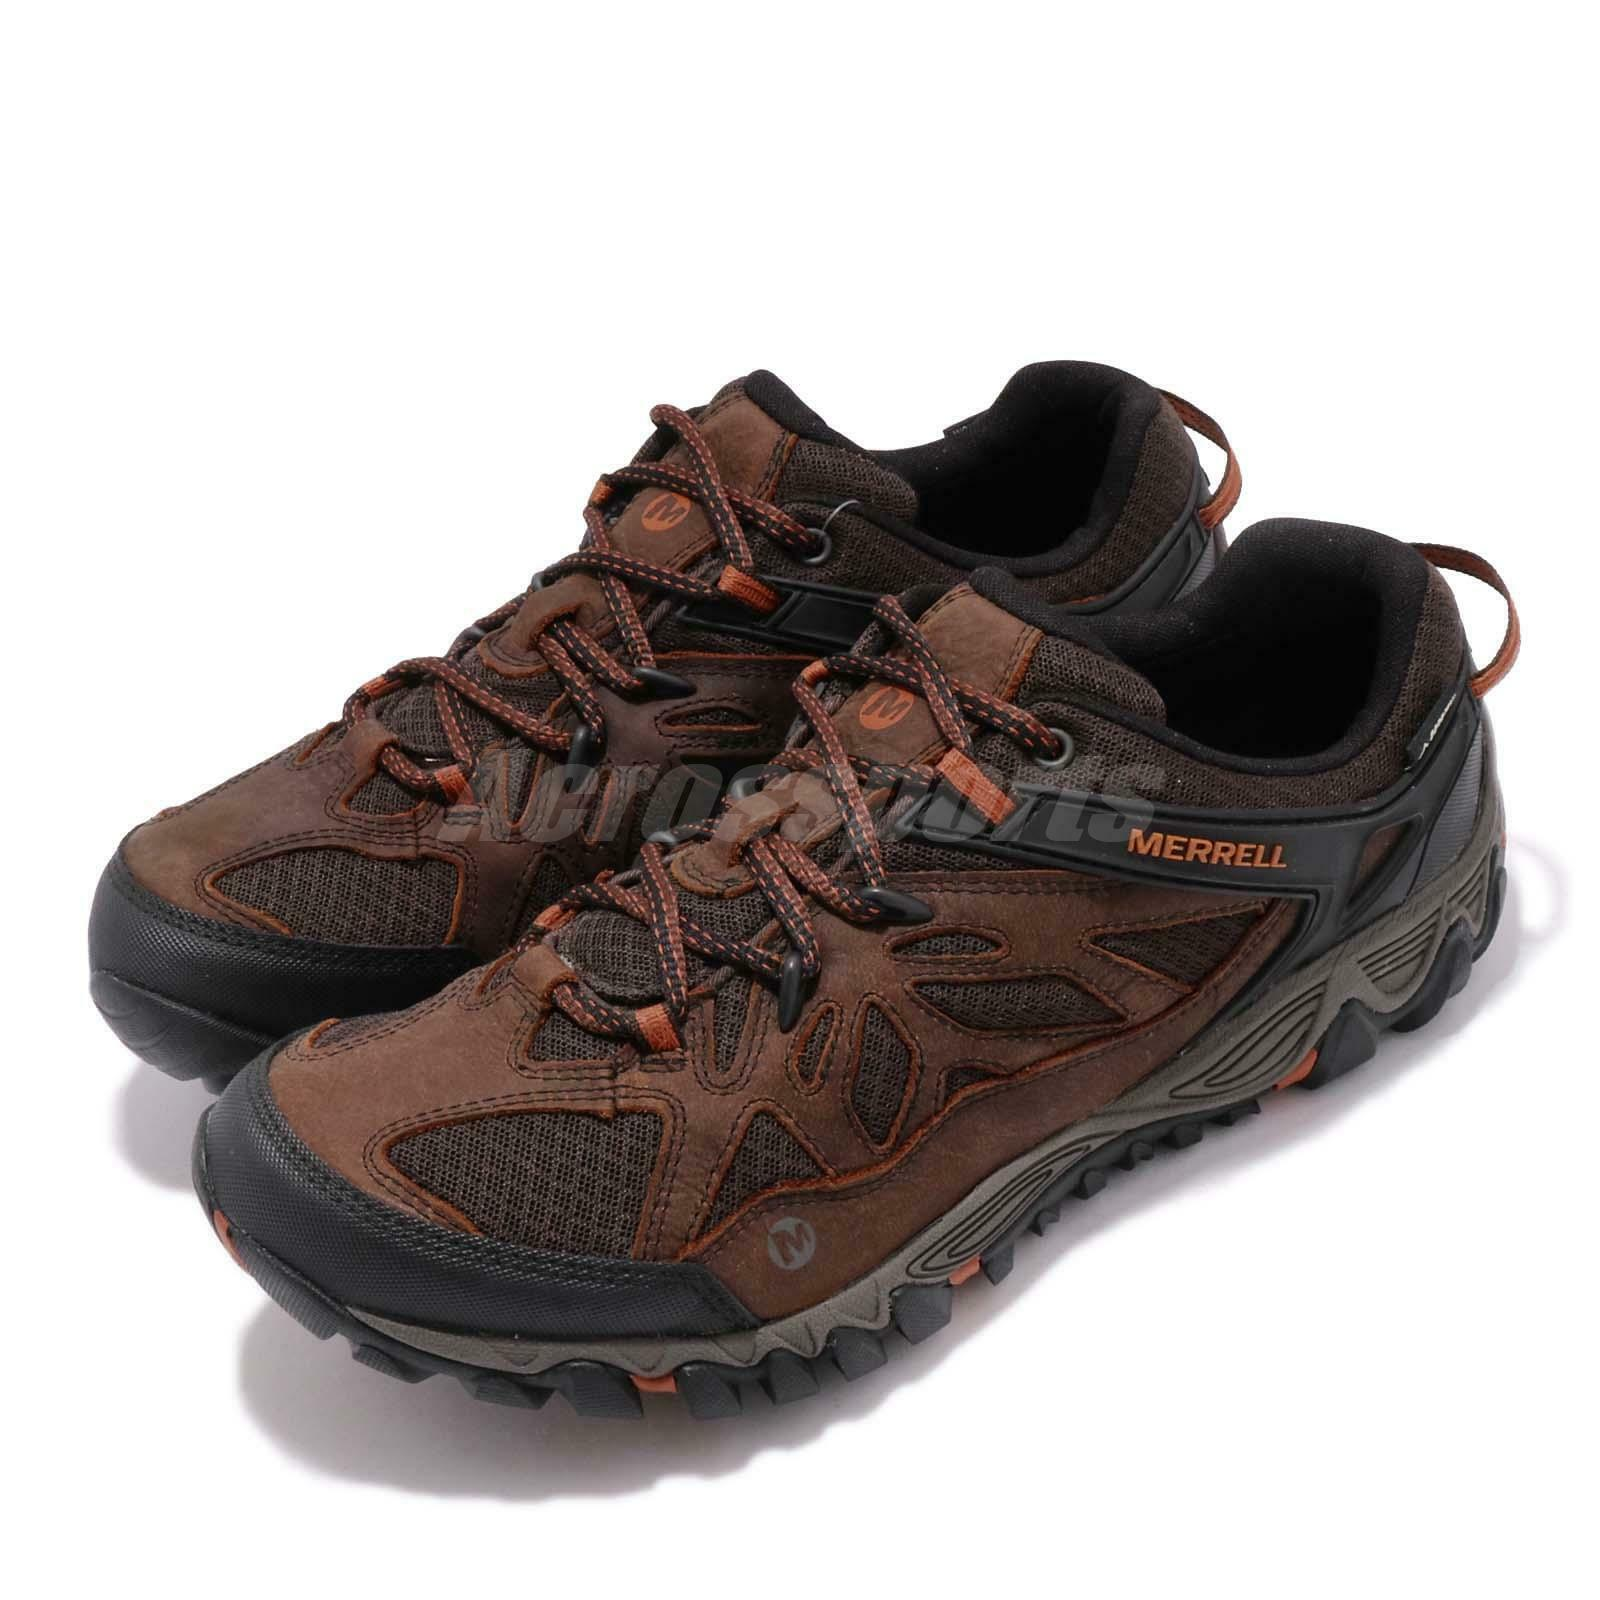 Merrell All All All Out Blaze Vent Gore-Tex Burnt Maple Uomo Outdoors Hiking scarpe J32799 207f62